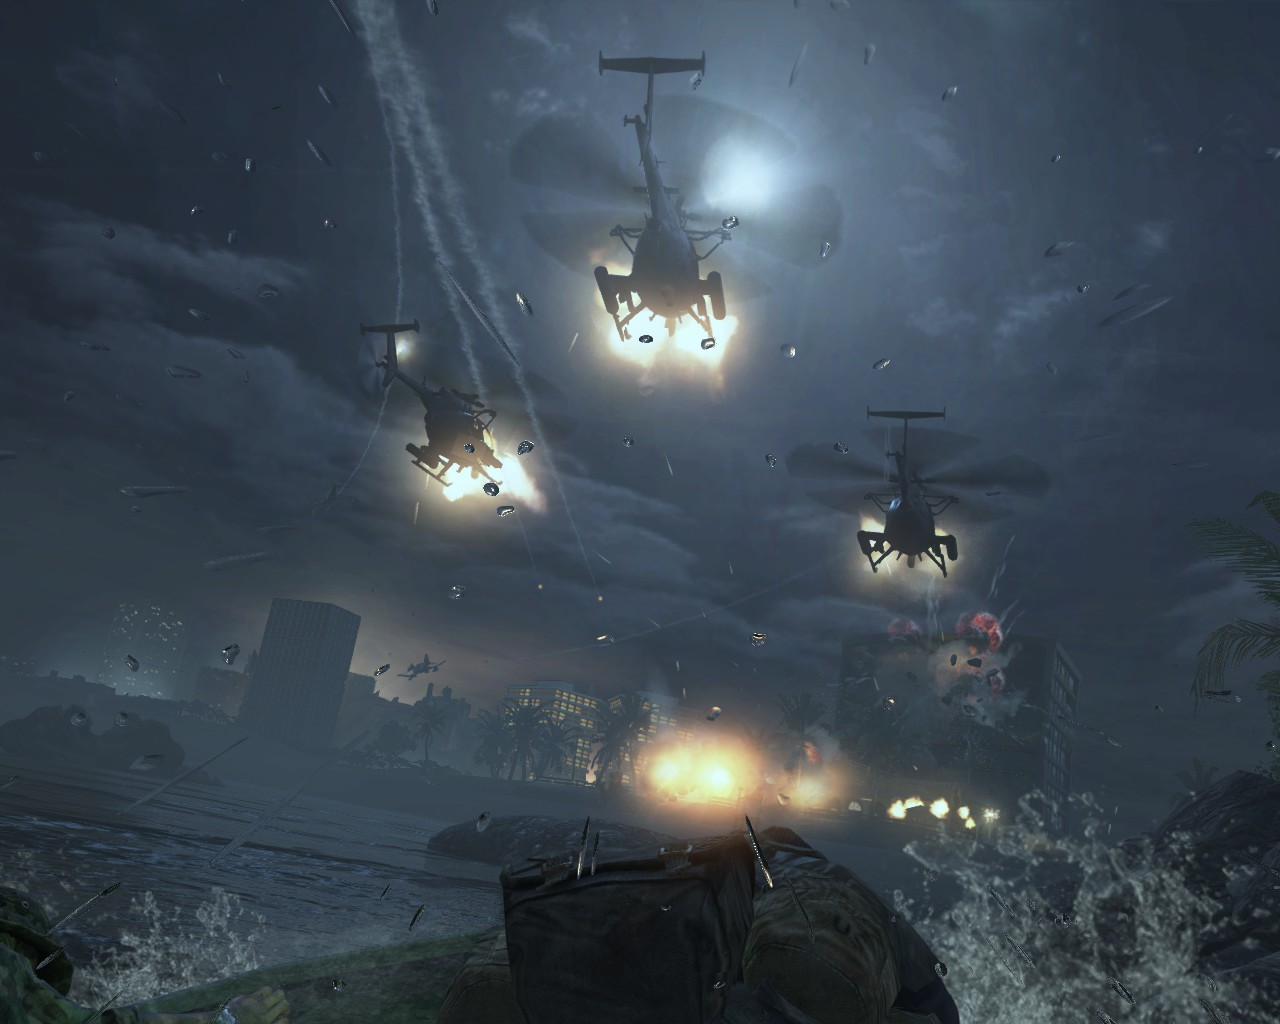 http://images1.wikia.nocookie.net/__cb20130108135522/callofduty/ru/images/a/a5/2013-01-08_00003.jpg